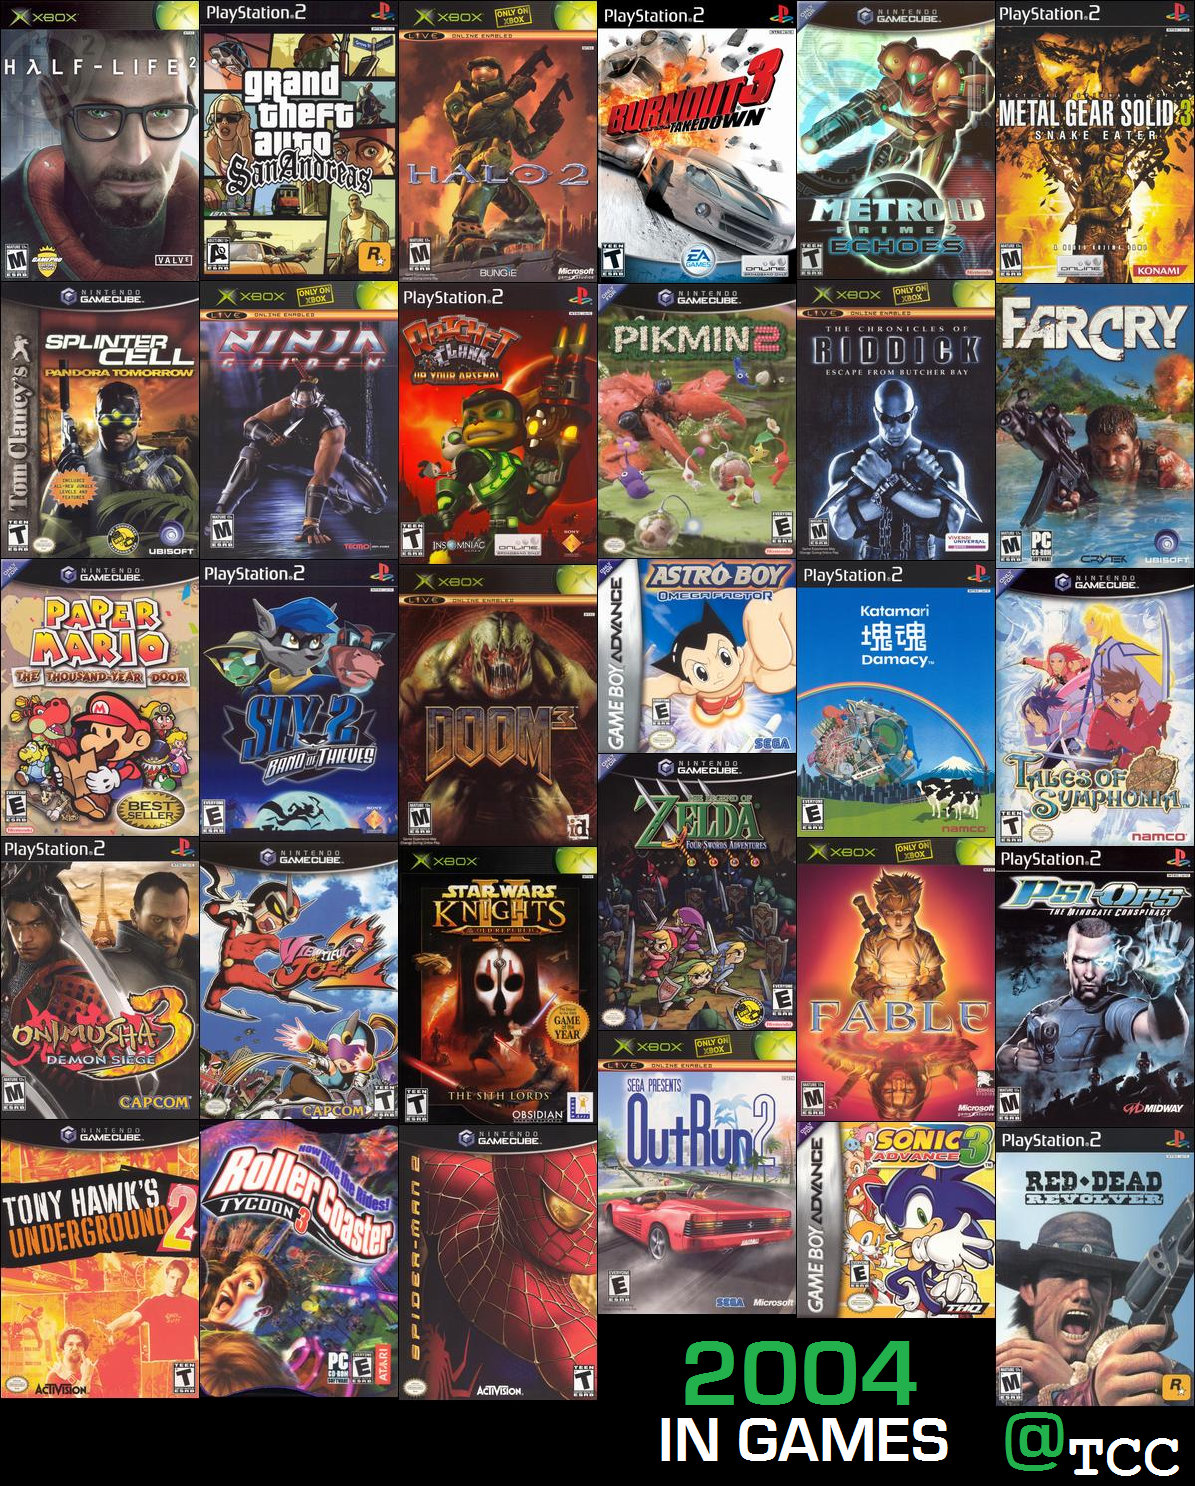 2004 in games